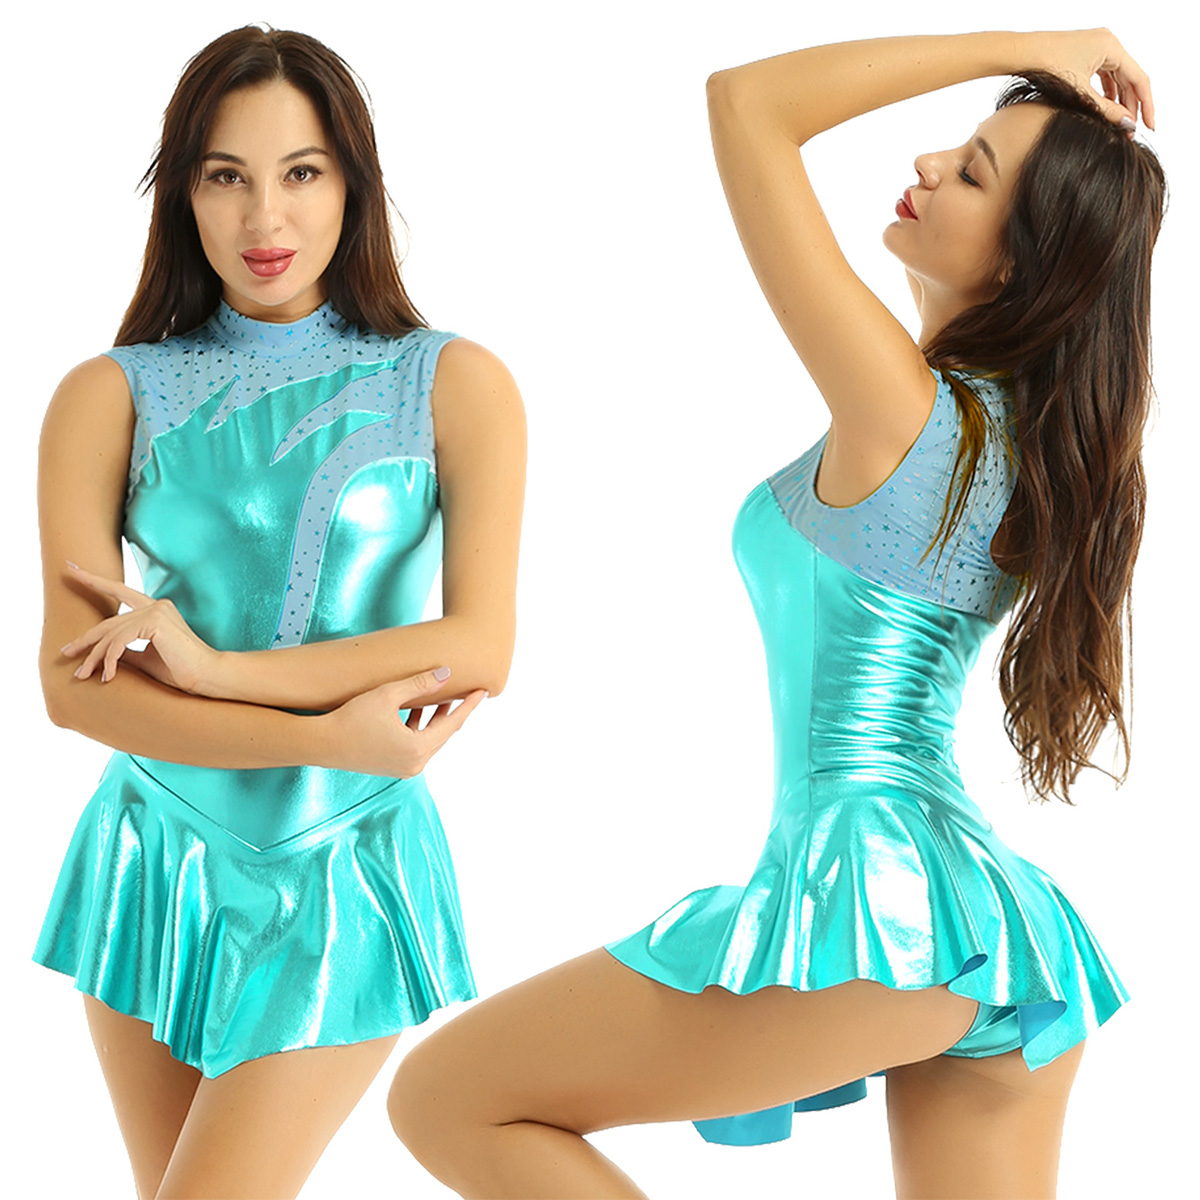 Adults Shiny Metallic High Neck Sleeveless Figure Skating Dress Women Ballet Gymnastics Leotard Dance Competition Costume